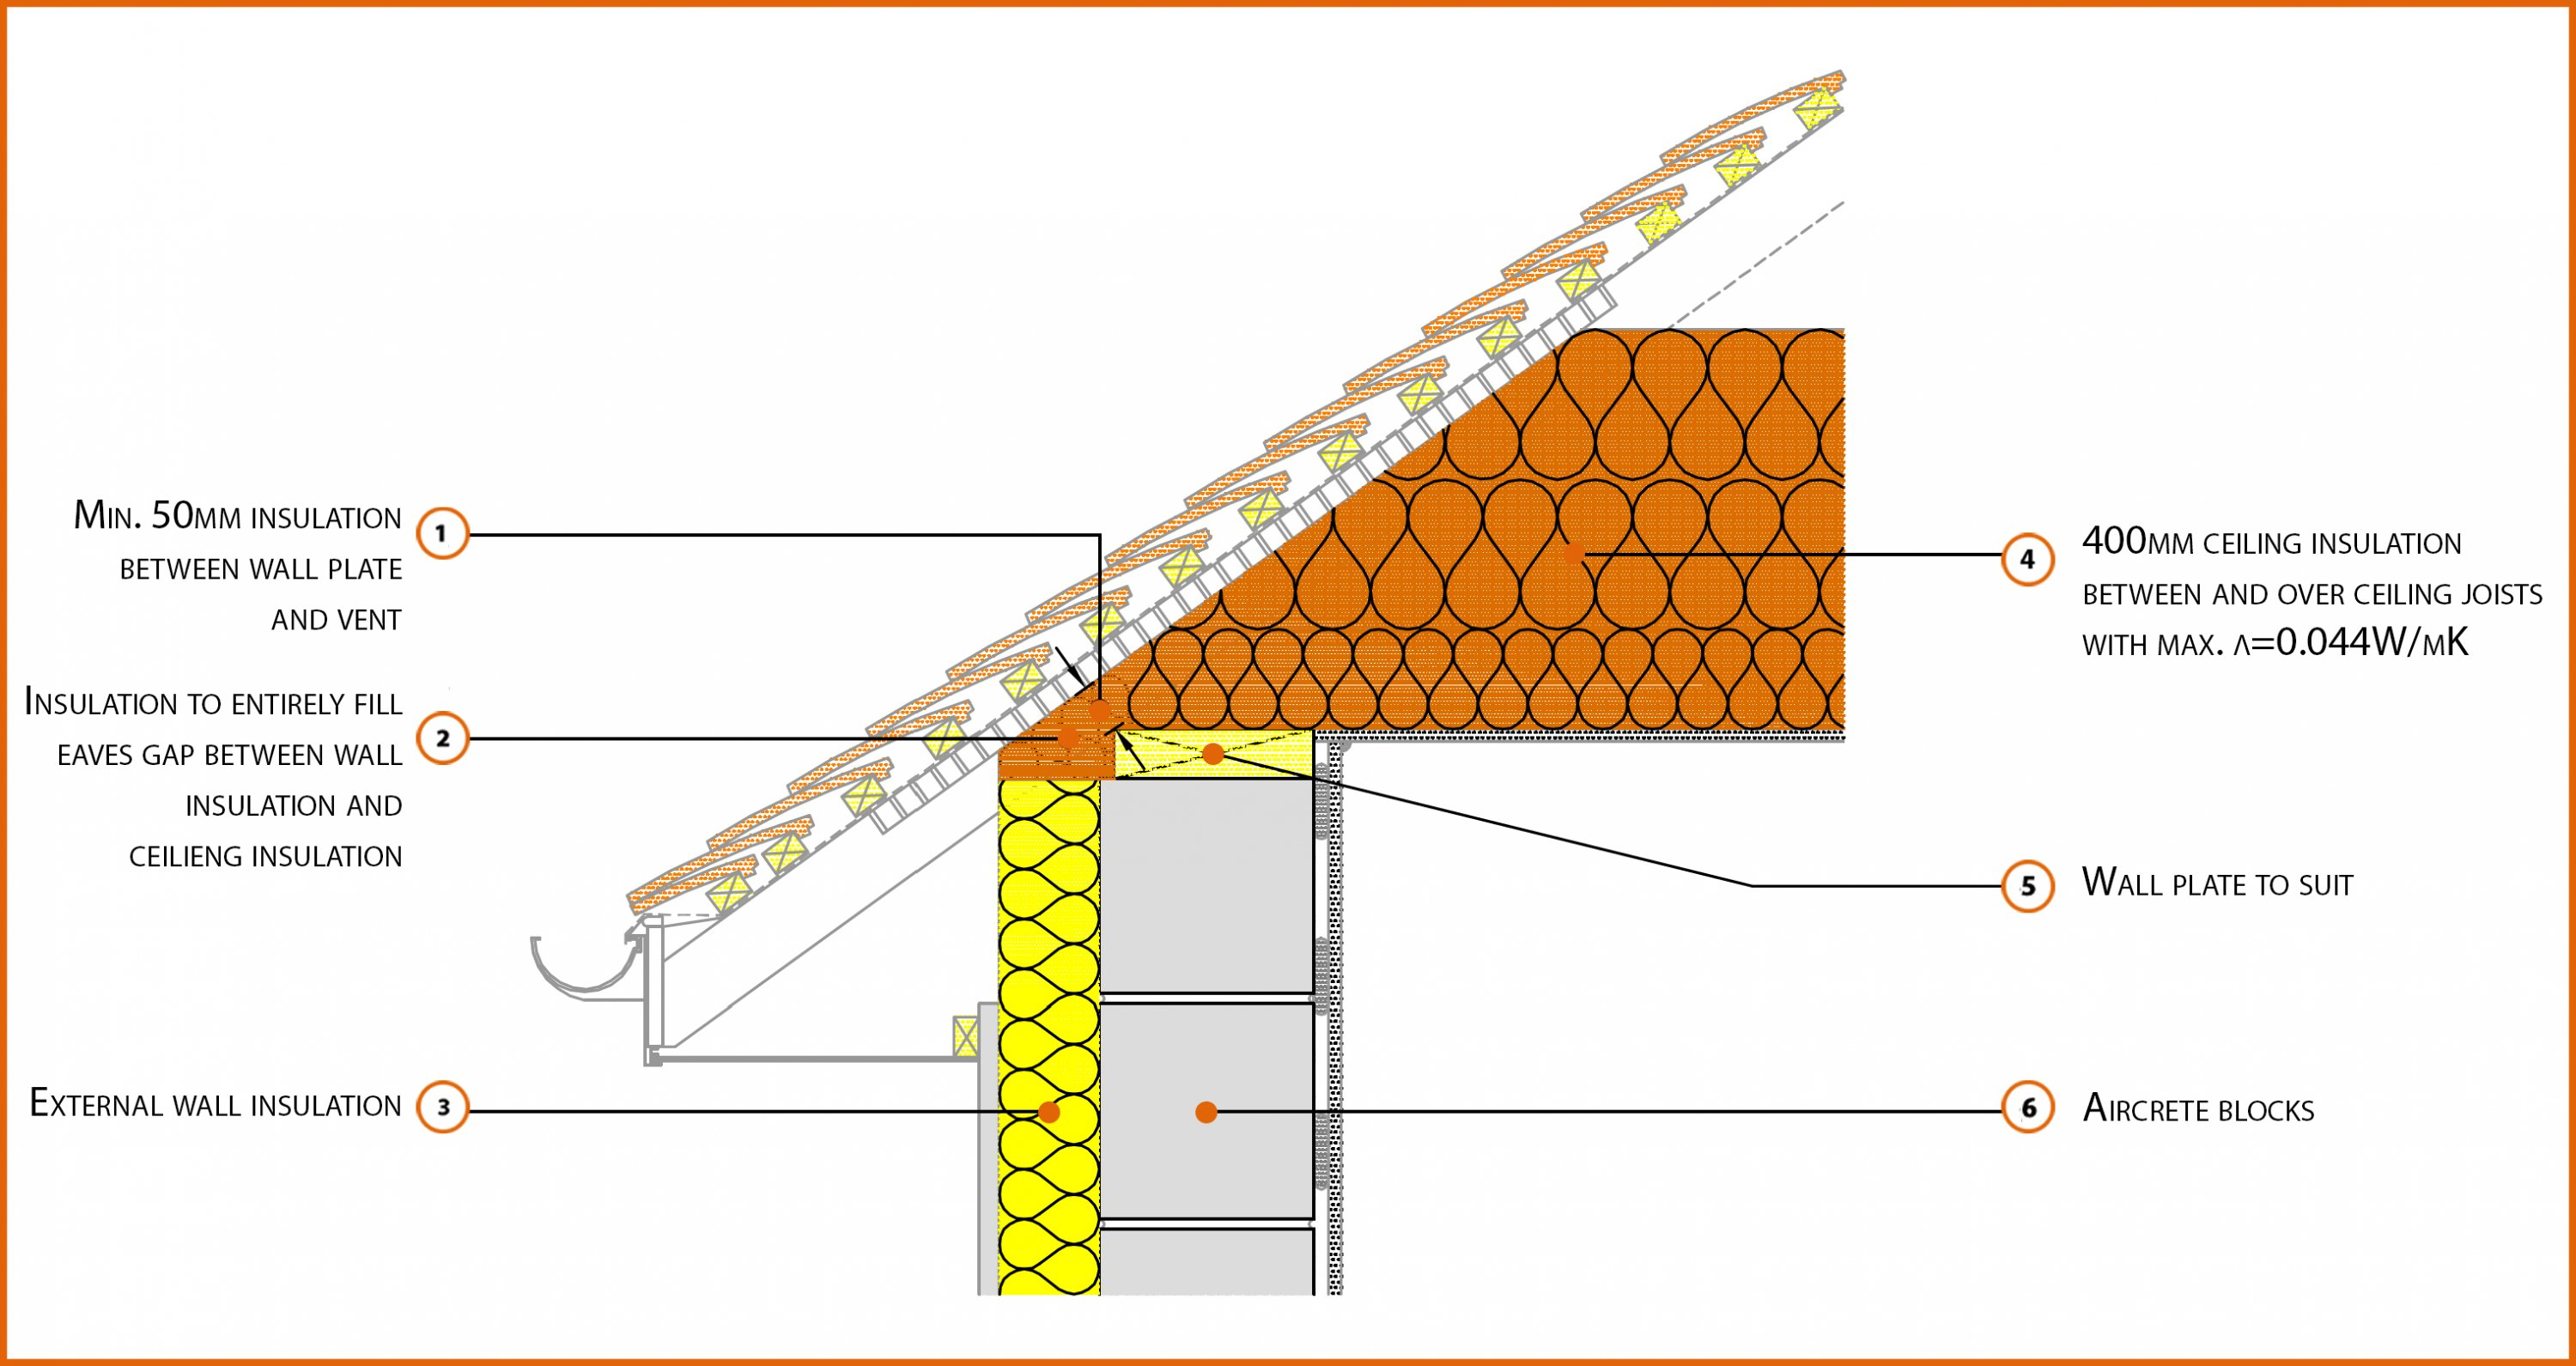 E10SMEW1 Pitched Roof Eaves Insulation at Ceiling level | LABC